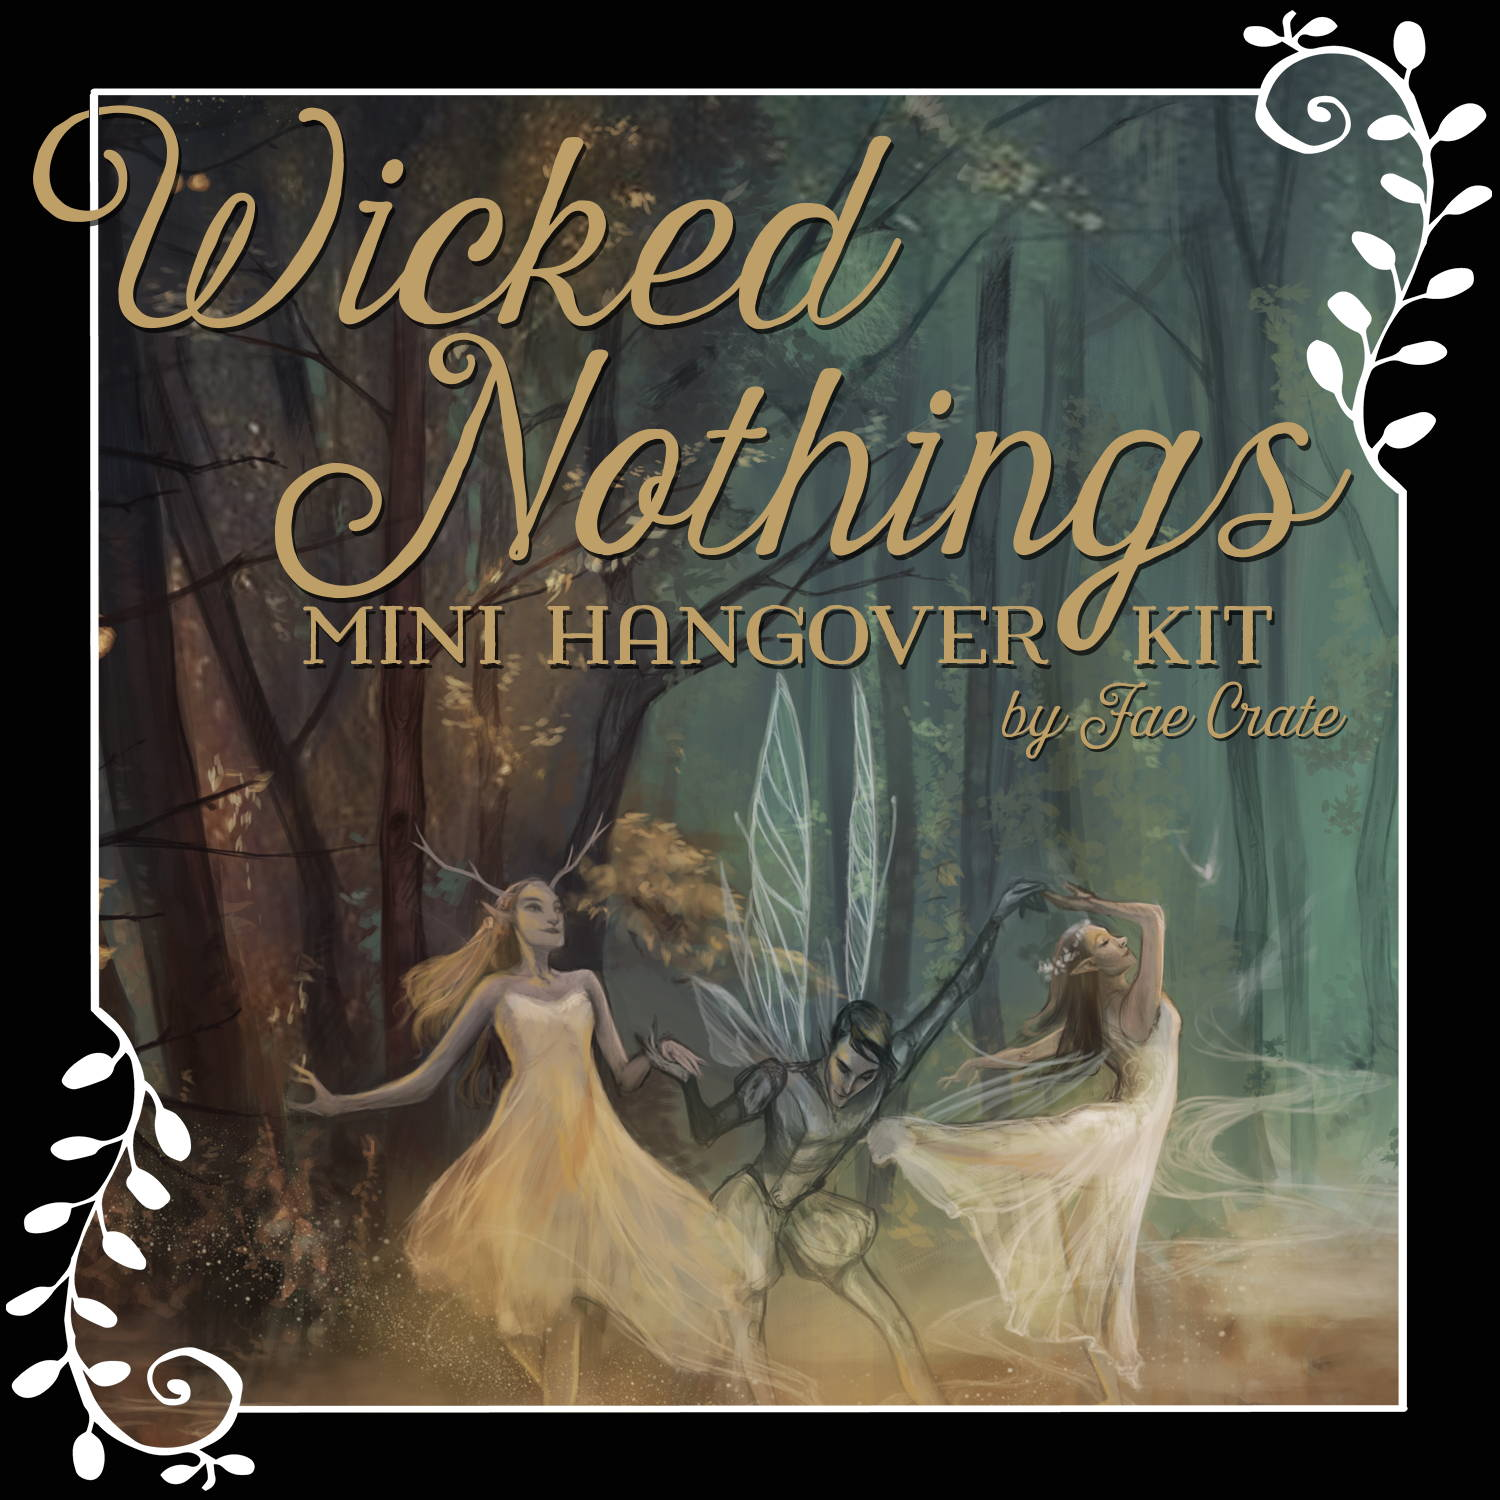 Wicked Nothings Mini Hangover Kit by Fae Crate